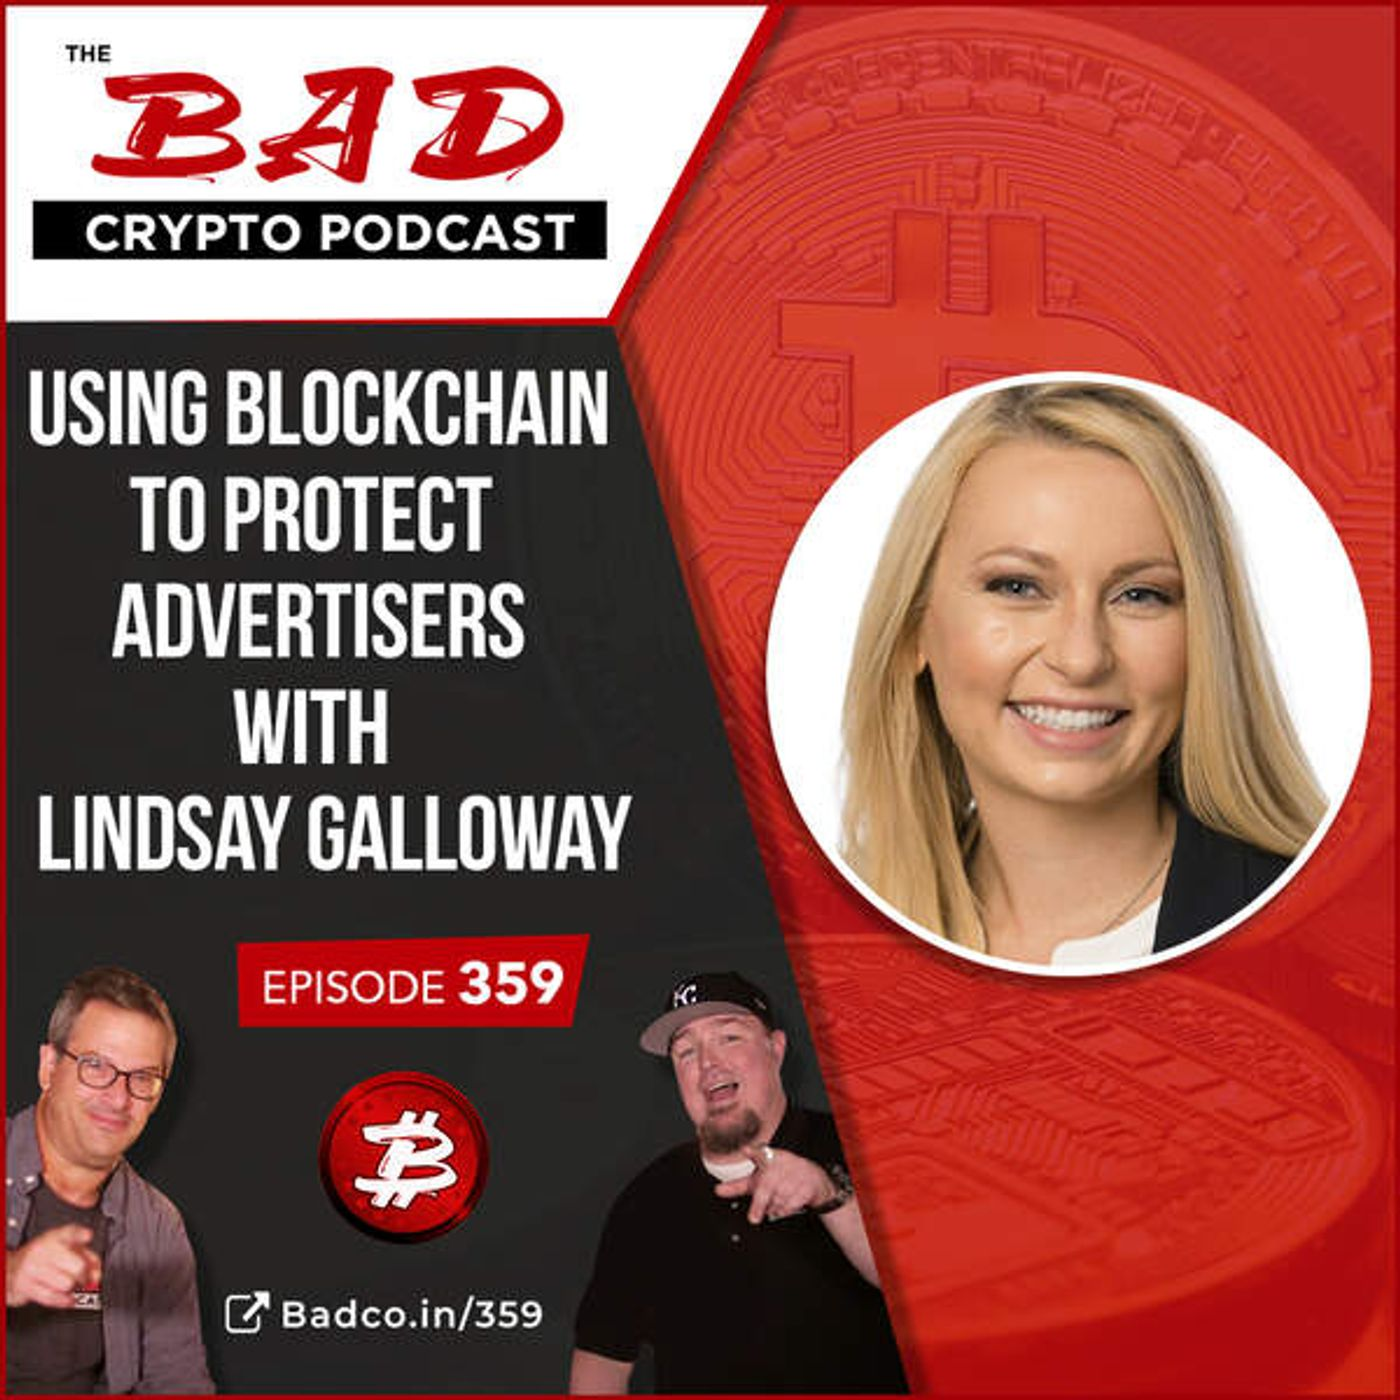 Heartland Newsfeed Podcast Network: The Bad Crypto Podcast (Using Blockchain to Protect Advertisers with Lindsay Galloway)